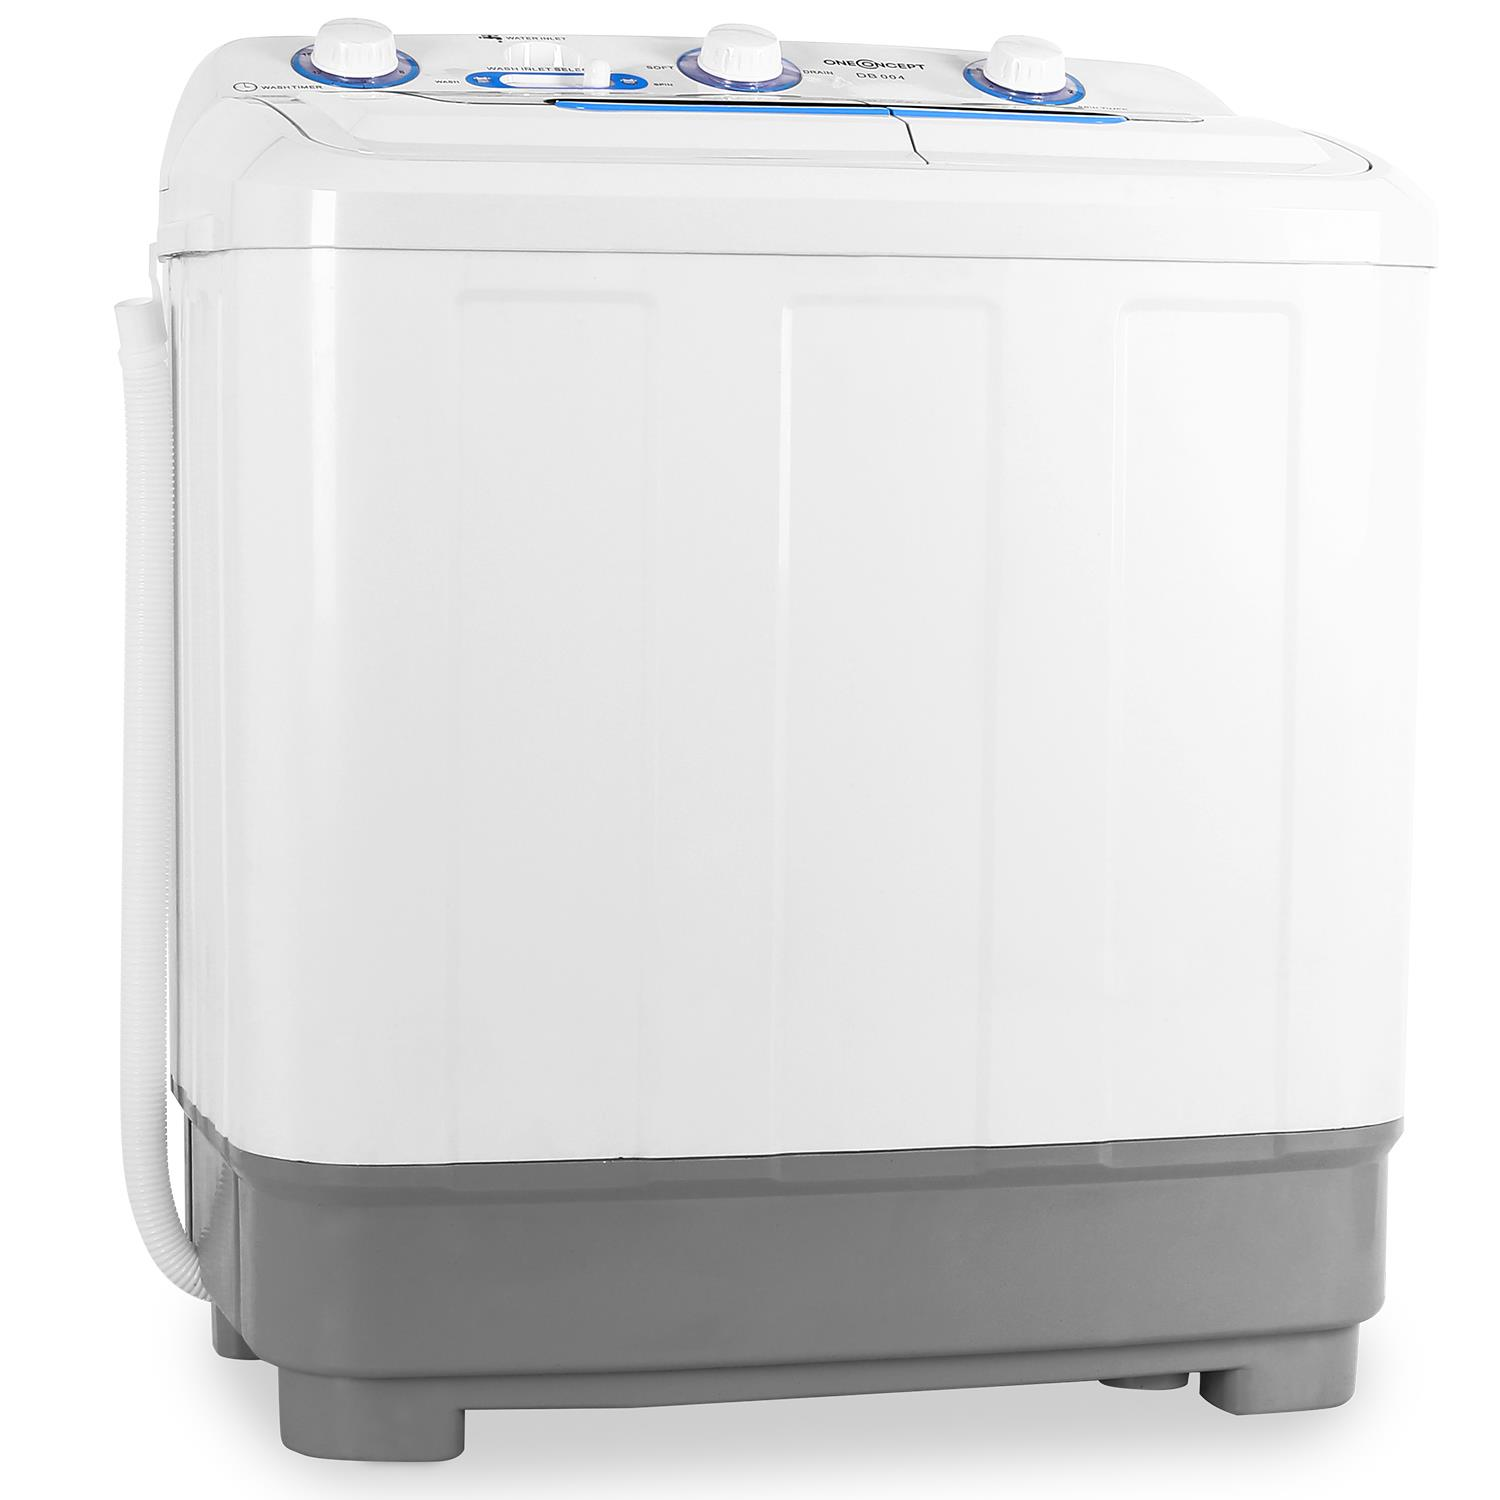 Mini Washing Machines Mini Washing Machine By Oneconcept Spin 48kg Max Portable Camping